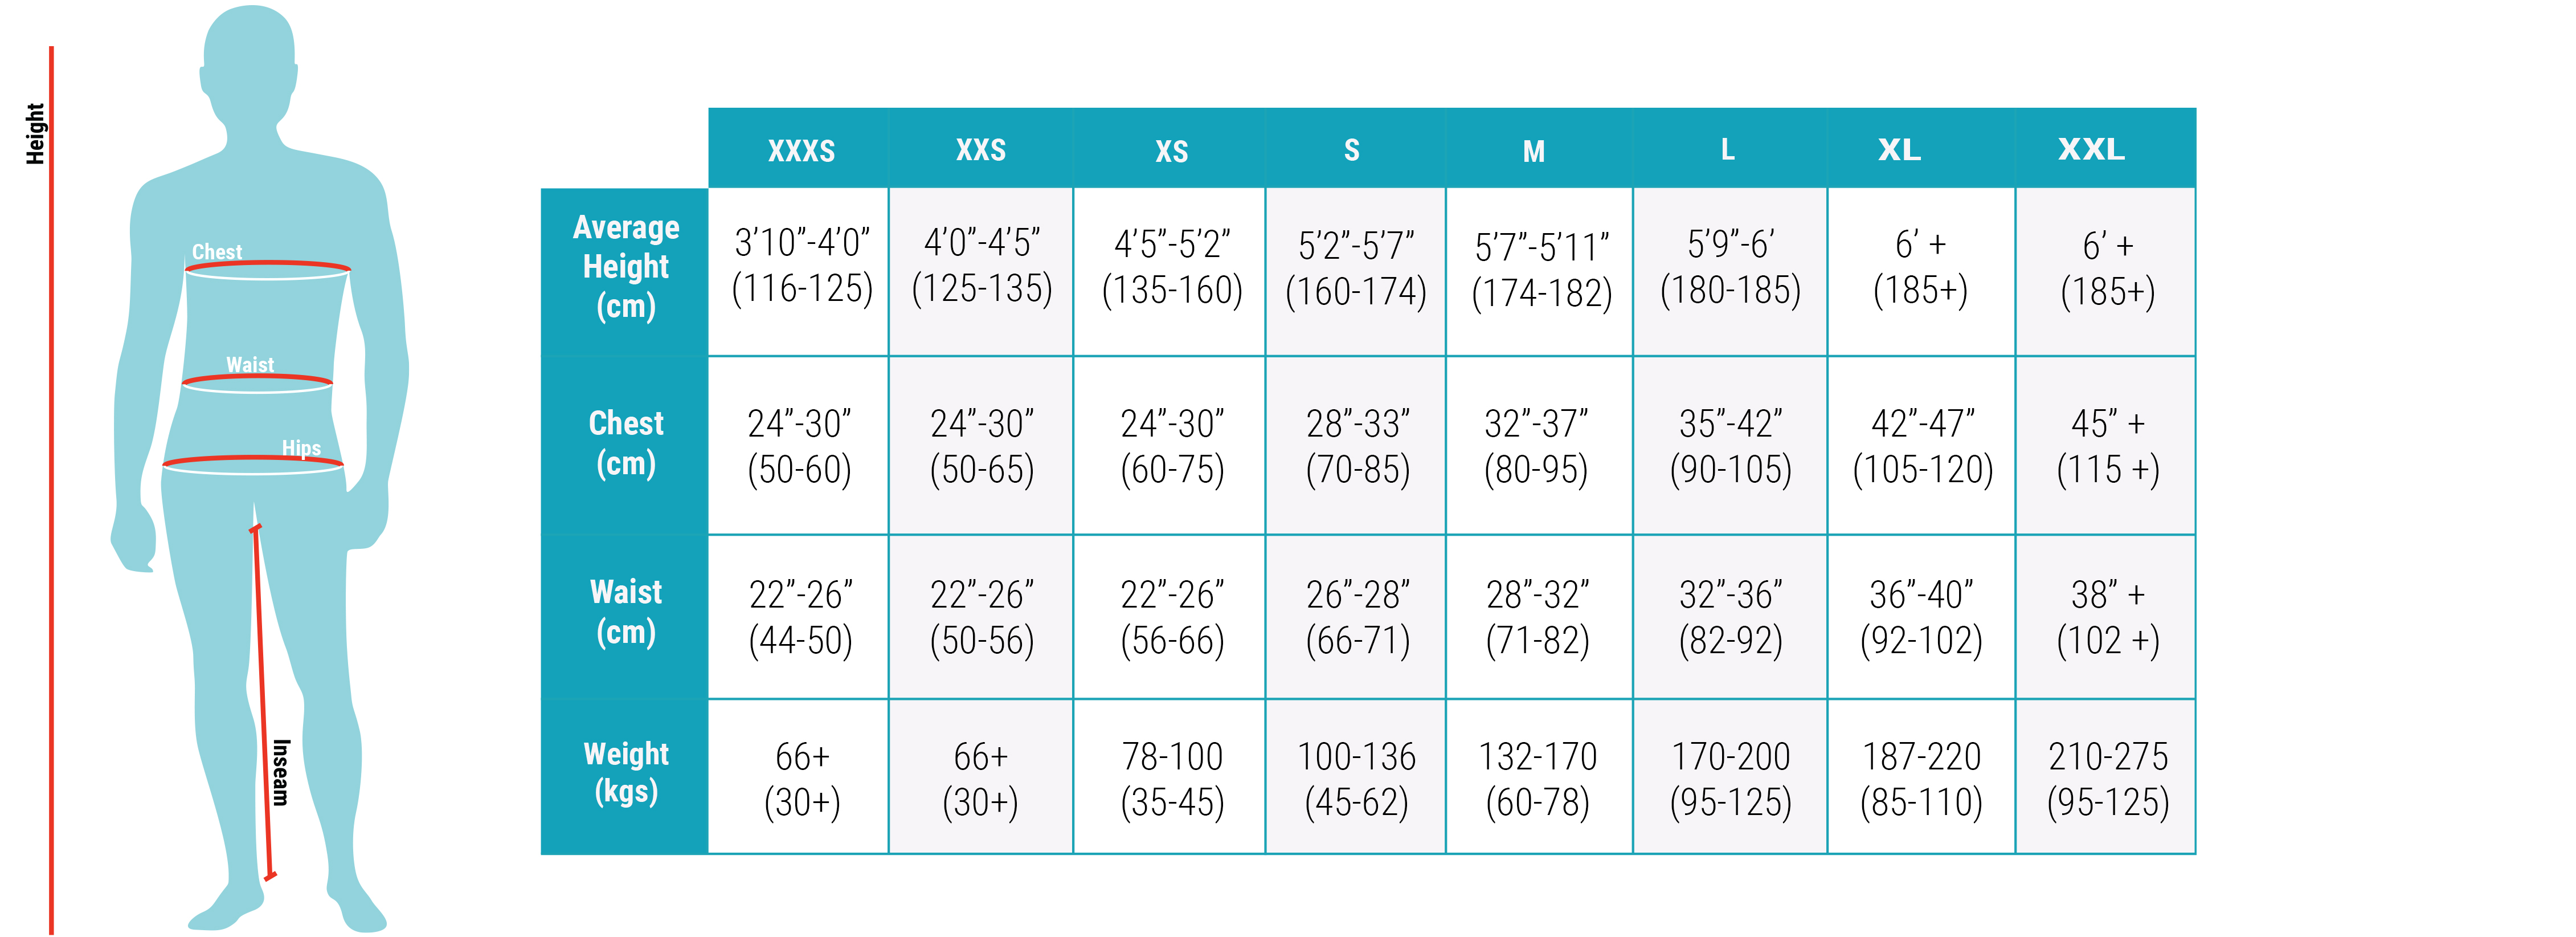 wcs-sea-mens-sizing-chart.jpg